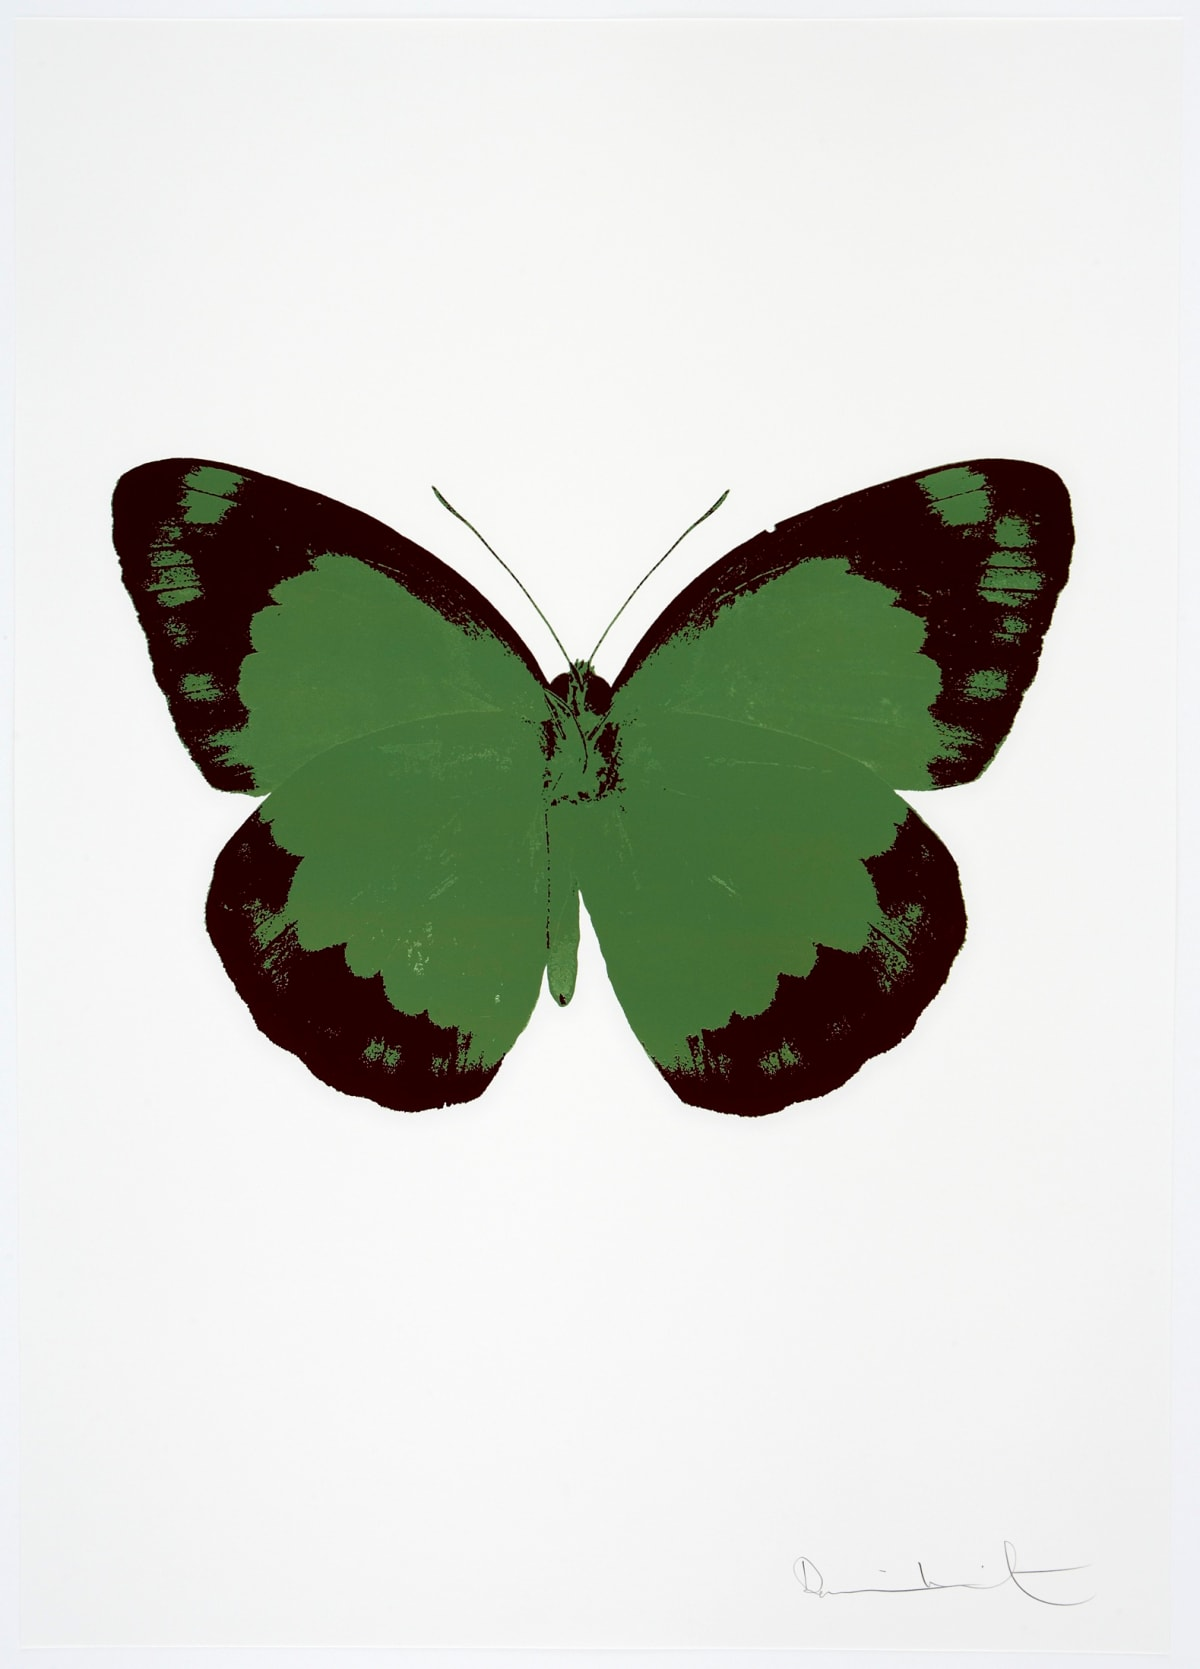 Damien Hirst The Souls II - Leaf Green/Burgundy/Blind Impression, 2010 2 colour foil block on 300gsm Arches 88 archival paper. Signed and numbered. Published by Paul Stolper and Other Criteria 72 x 51cm OC7892 / 658-75 Edition of 15